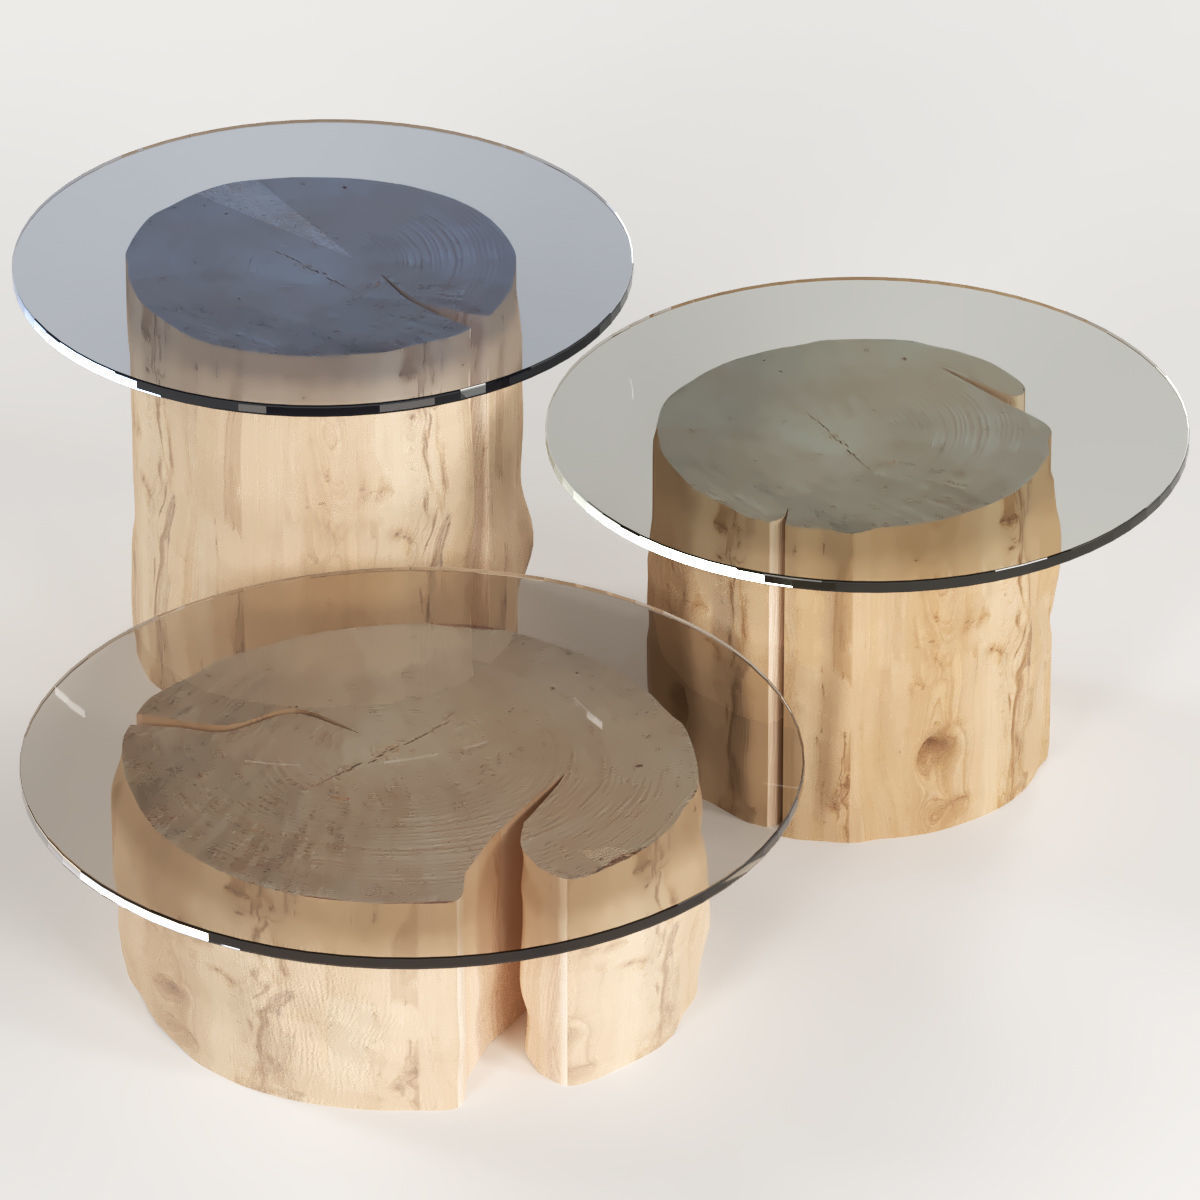 3d 3 Round Coffee Table Stump With Glass Top Cgtrader